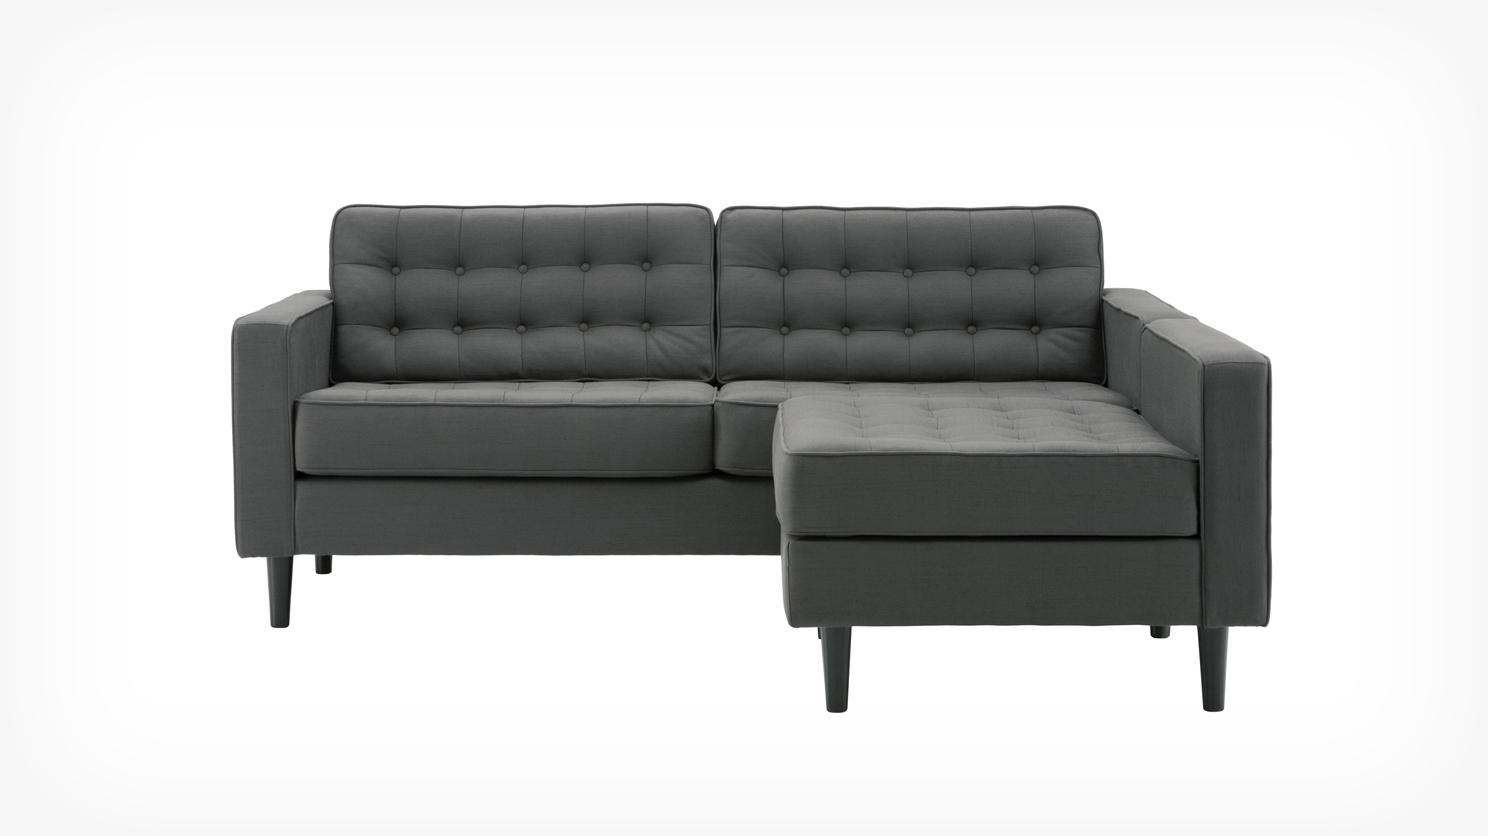 Eq3 | Living > Seating > Sectionals With Regard To Small 2 Piece Sectional (Image 7 of 20)